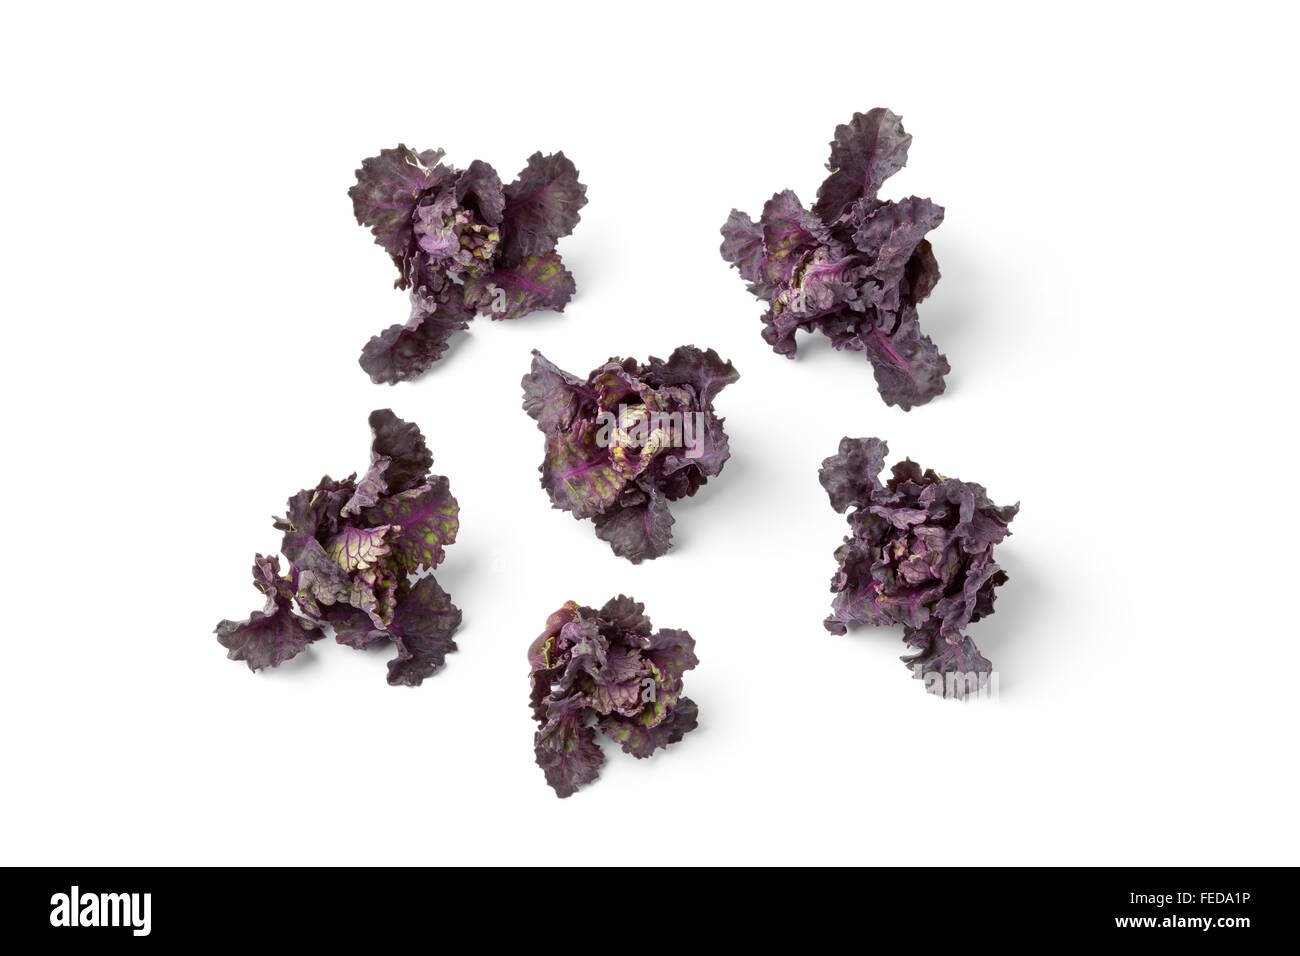 Fresh red flower sprouts on white background - Stock Image